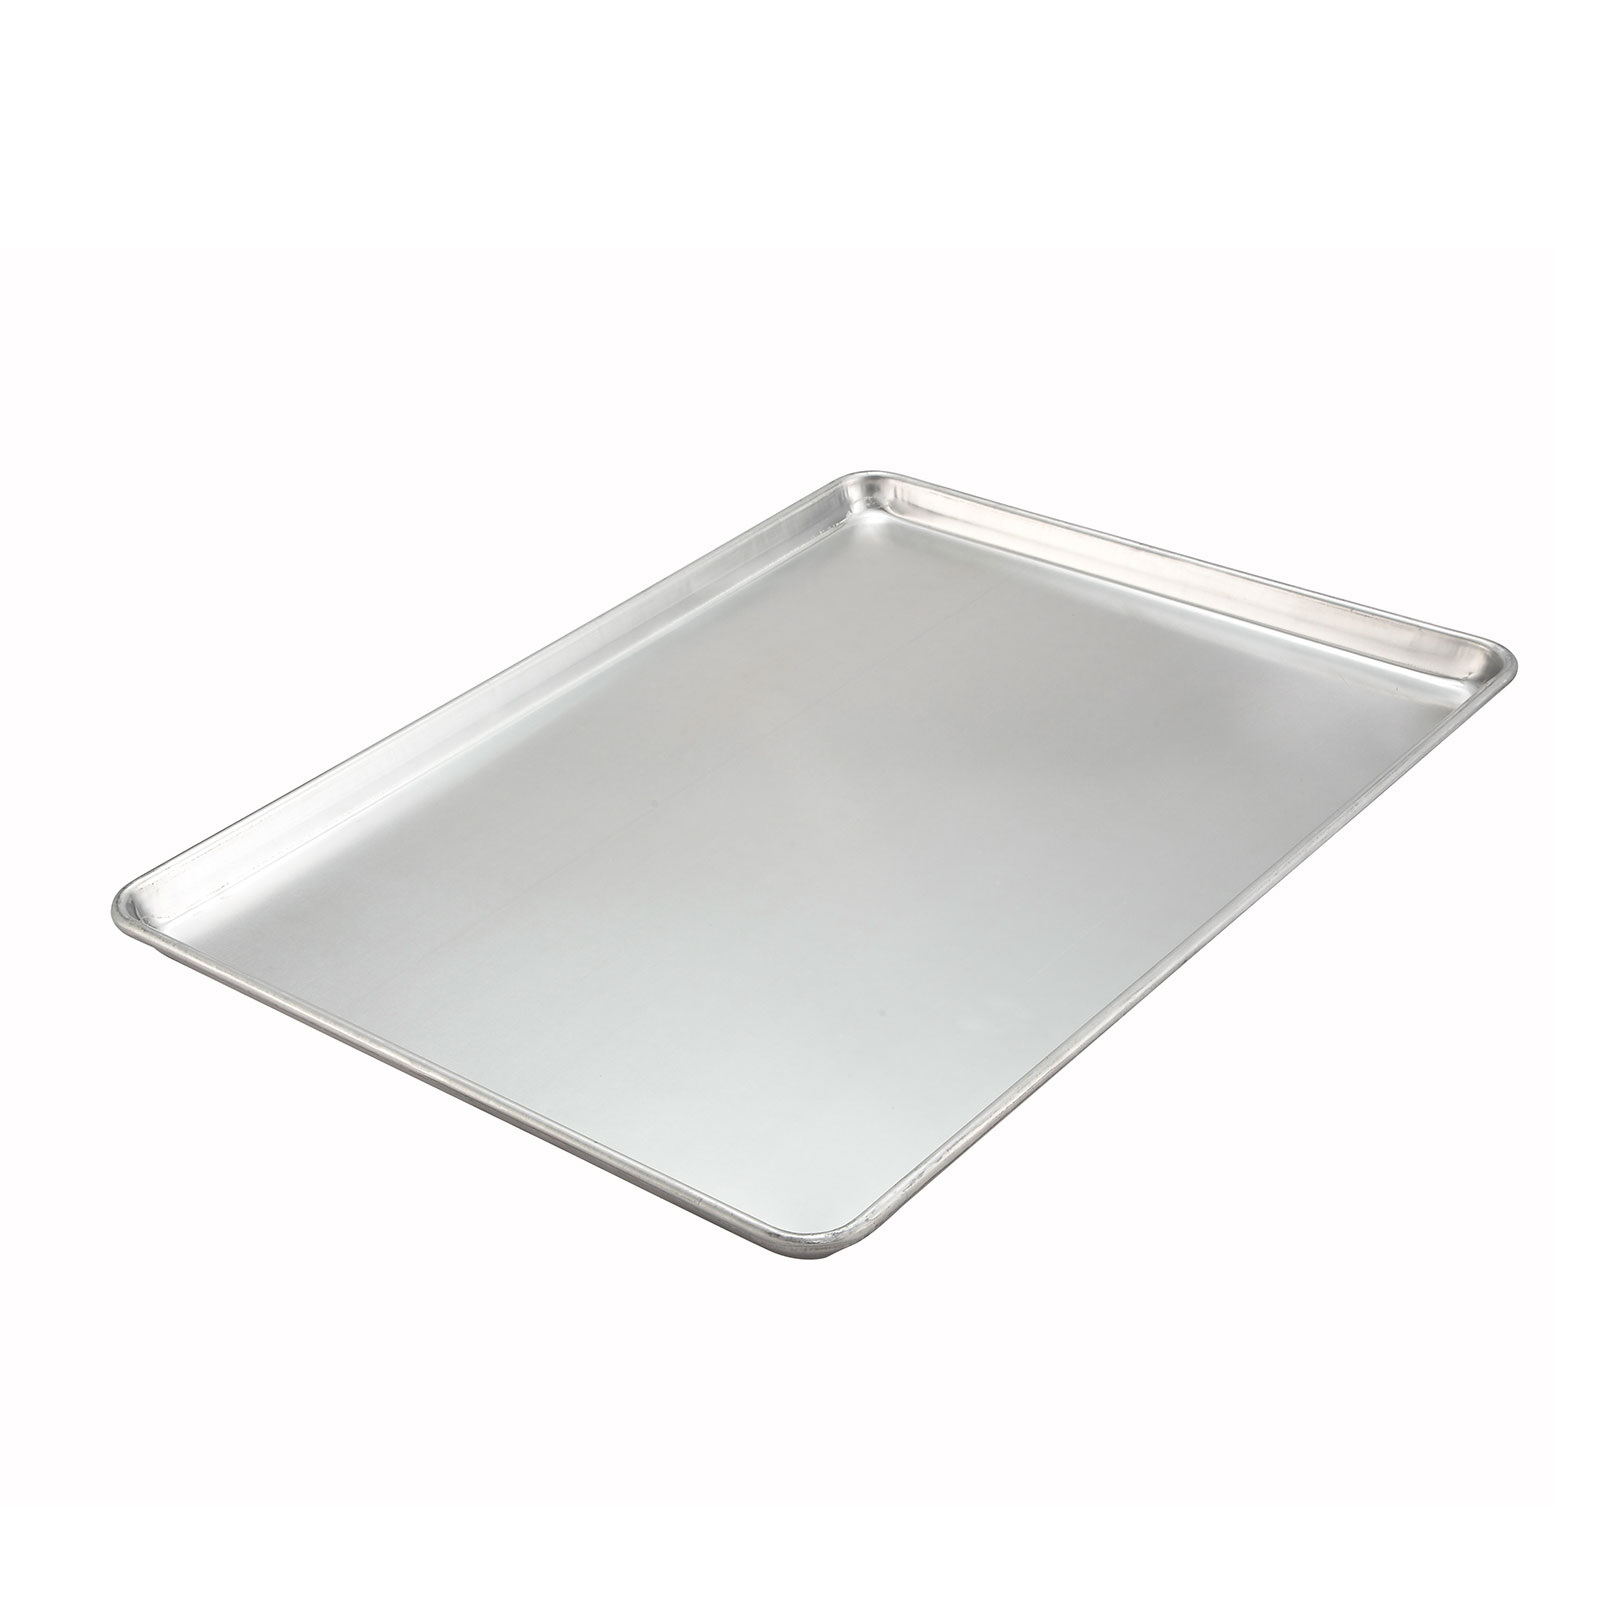 Winco ALXP-1826 bun / sheet pan